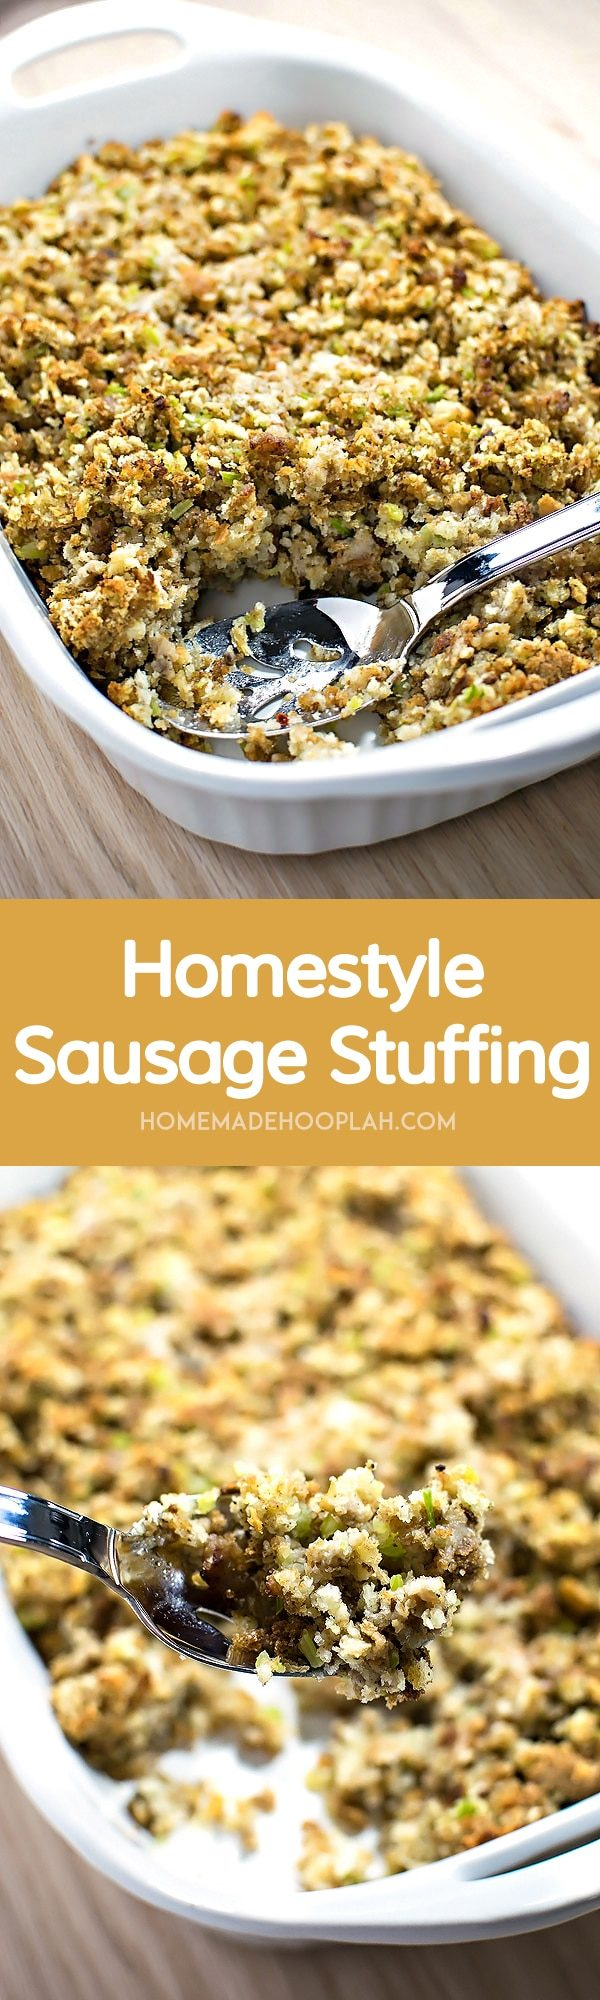 Homestyle Sausage Stuffing Homemade Hooplah